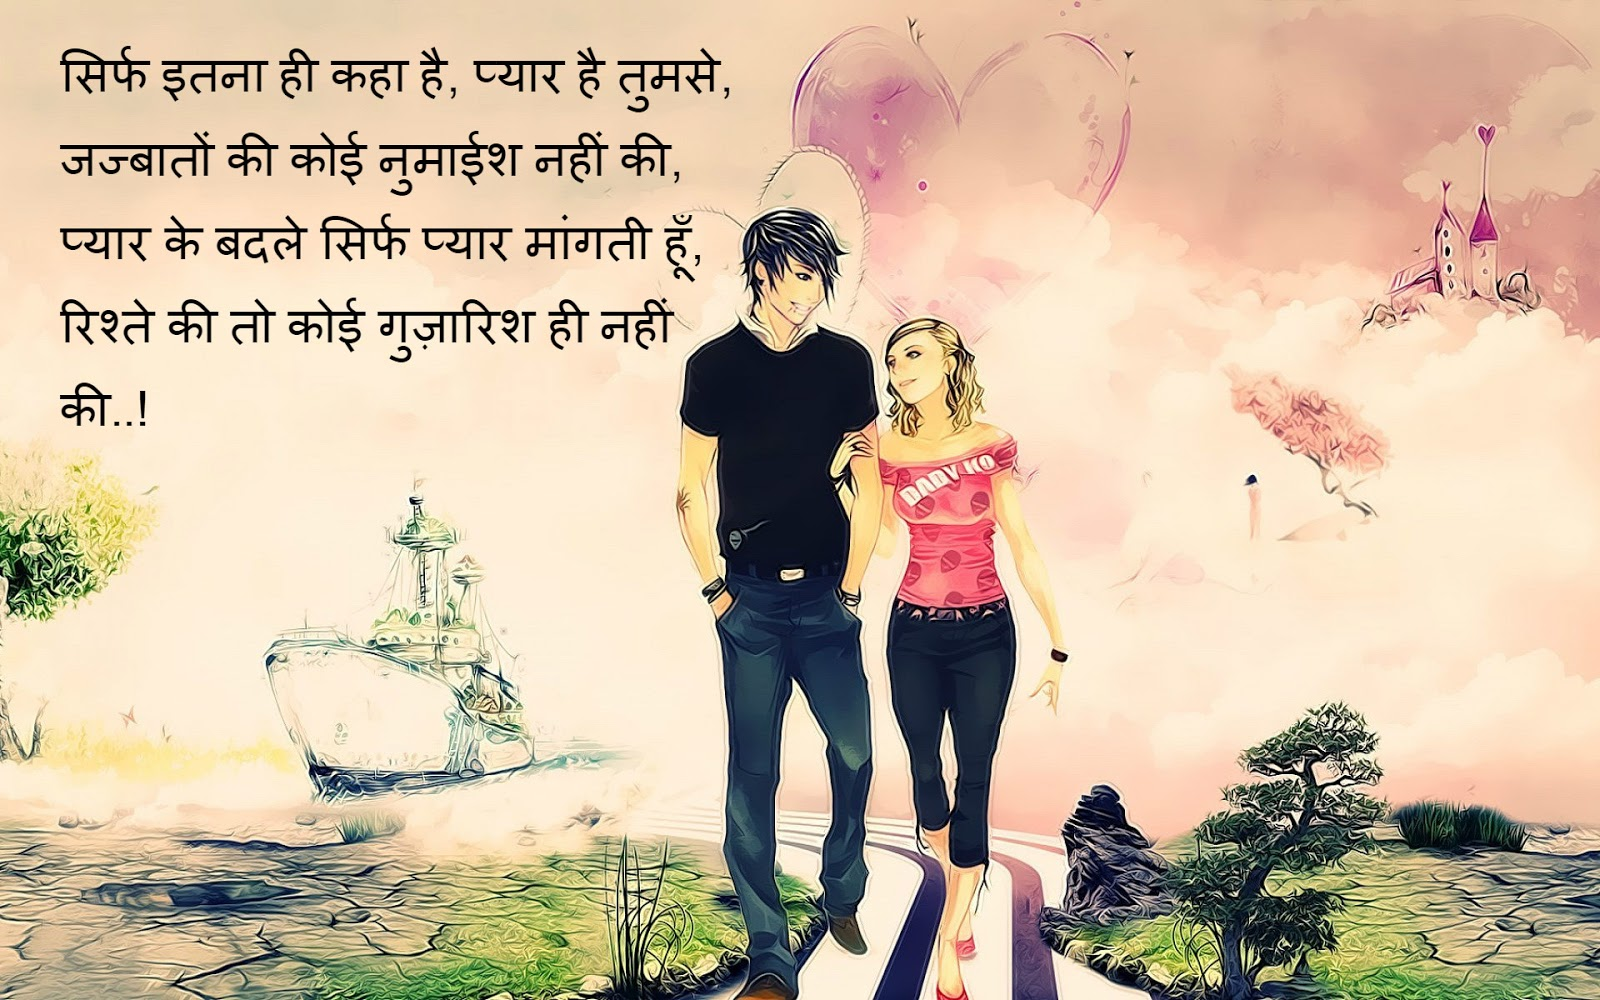 Wallpaper download love shayri - Hd Whatsapp Couple Shayari Image Whatsapp Couple Funny Shayari Image Download Whatsapp Couple Hindi Love Shayari Wallpaper Gallery Whatsapp Couple Love